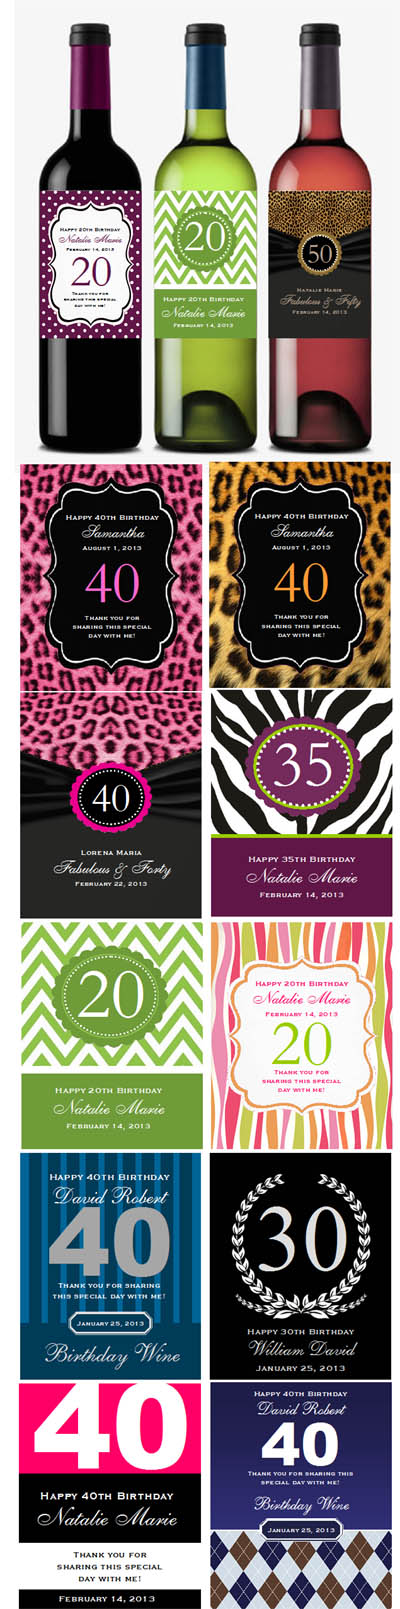 personalized wine bottle labels for birthday ; Birthday-Wine-Bottle-Labels-Details